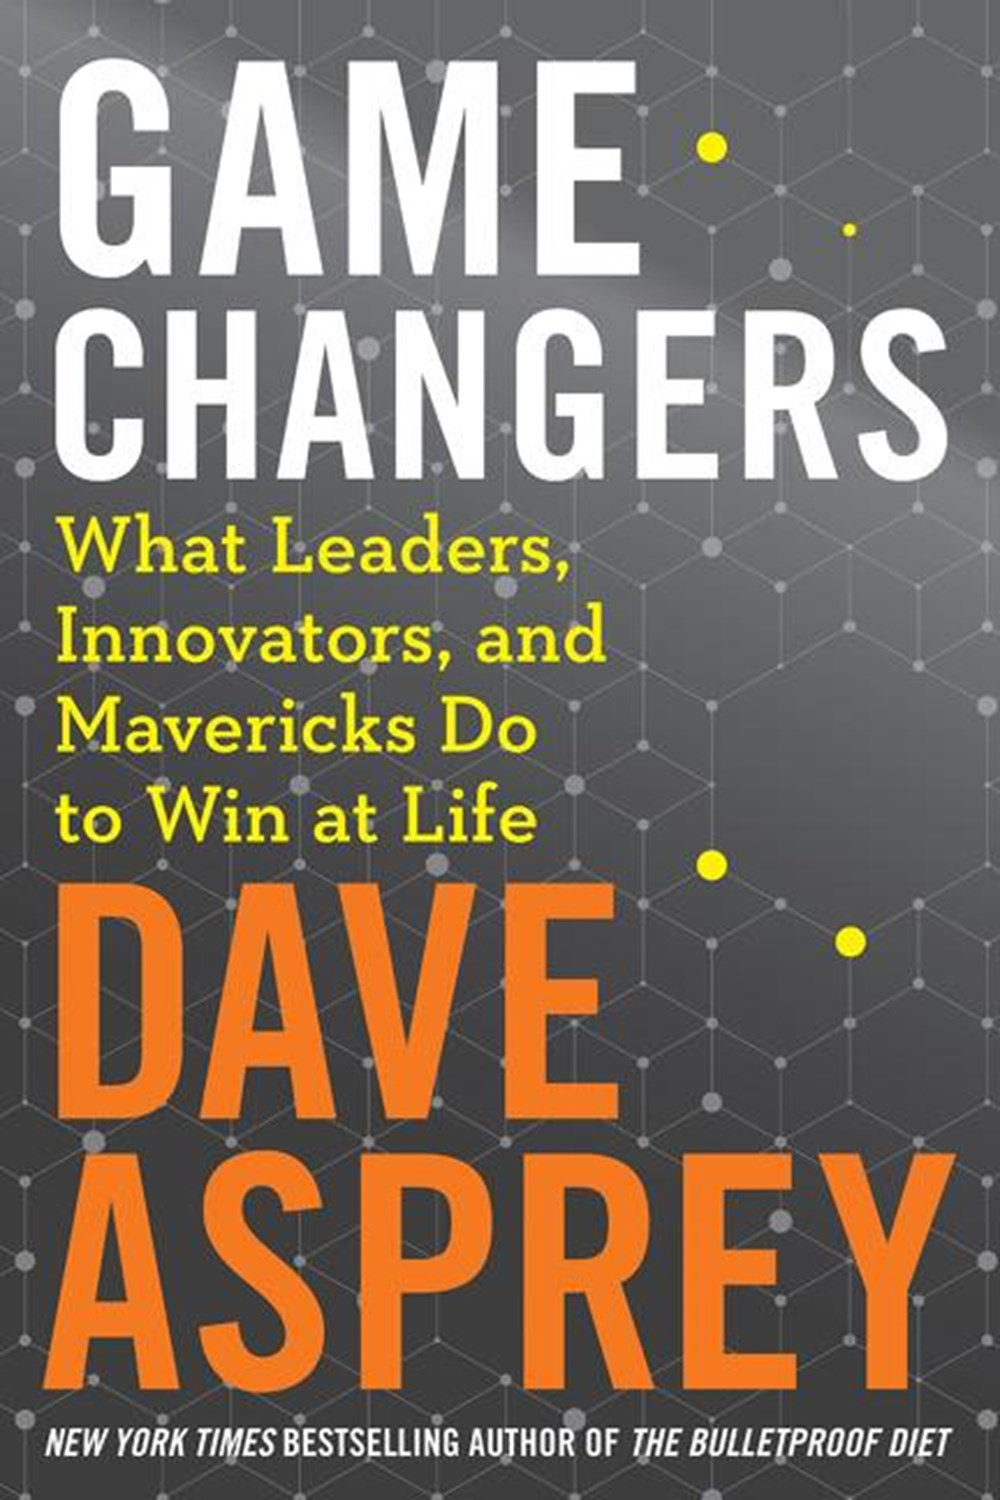 Game Changers What Leaders, Innovators, and Mavericks Do to Win at Life